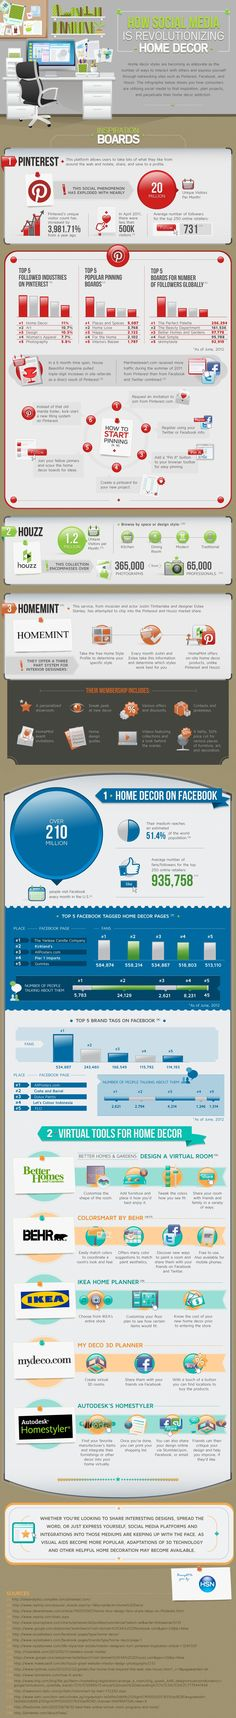 How Social Media Is Revolutionizing Home Decor.  [INFOGRAPHIC] obviously pinterest is the way to go for on-line advertisment.